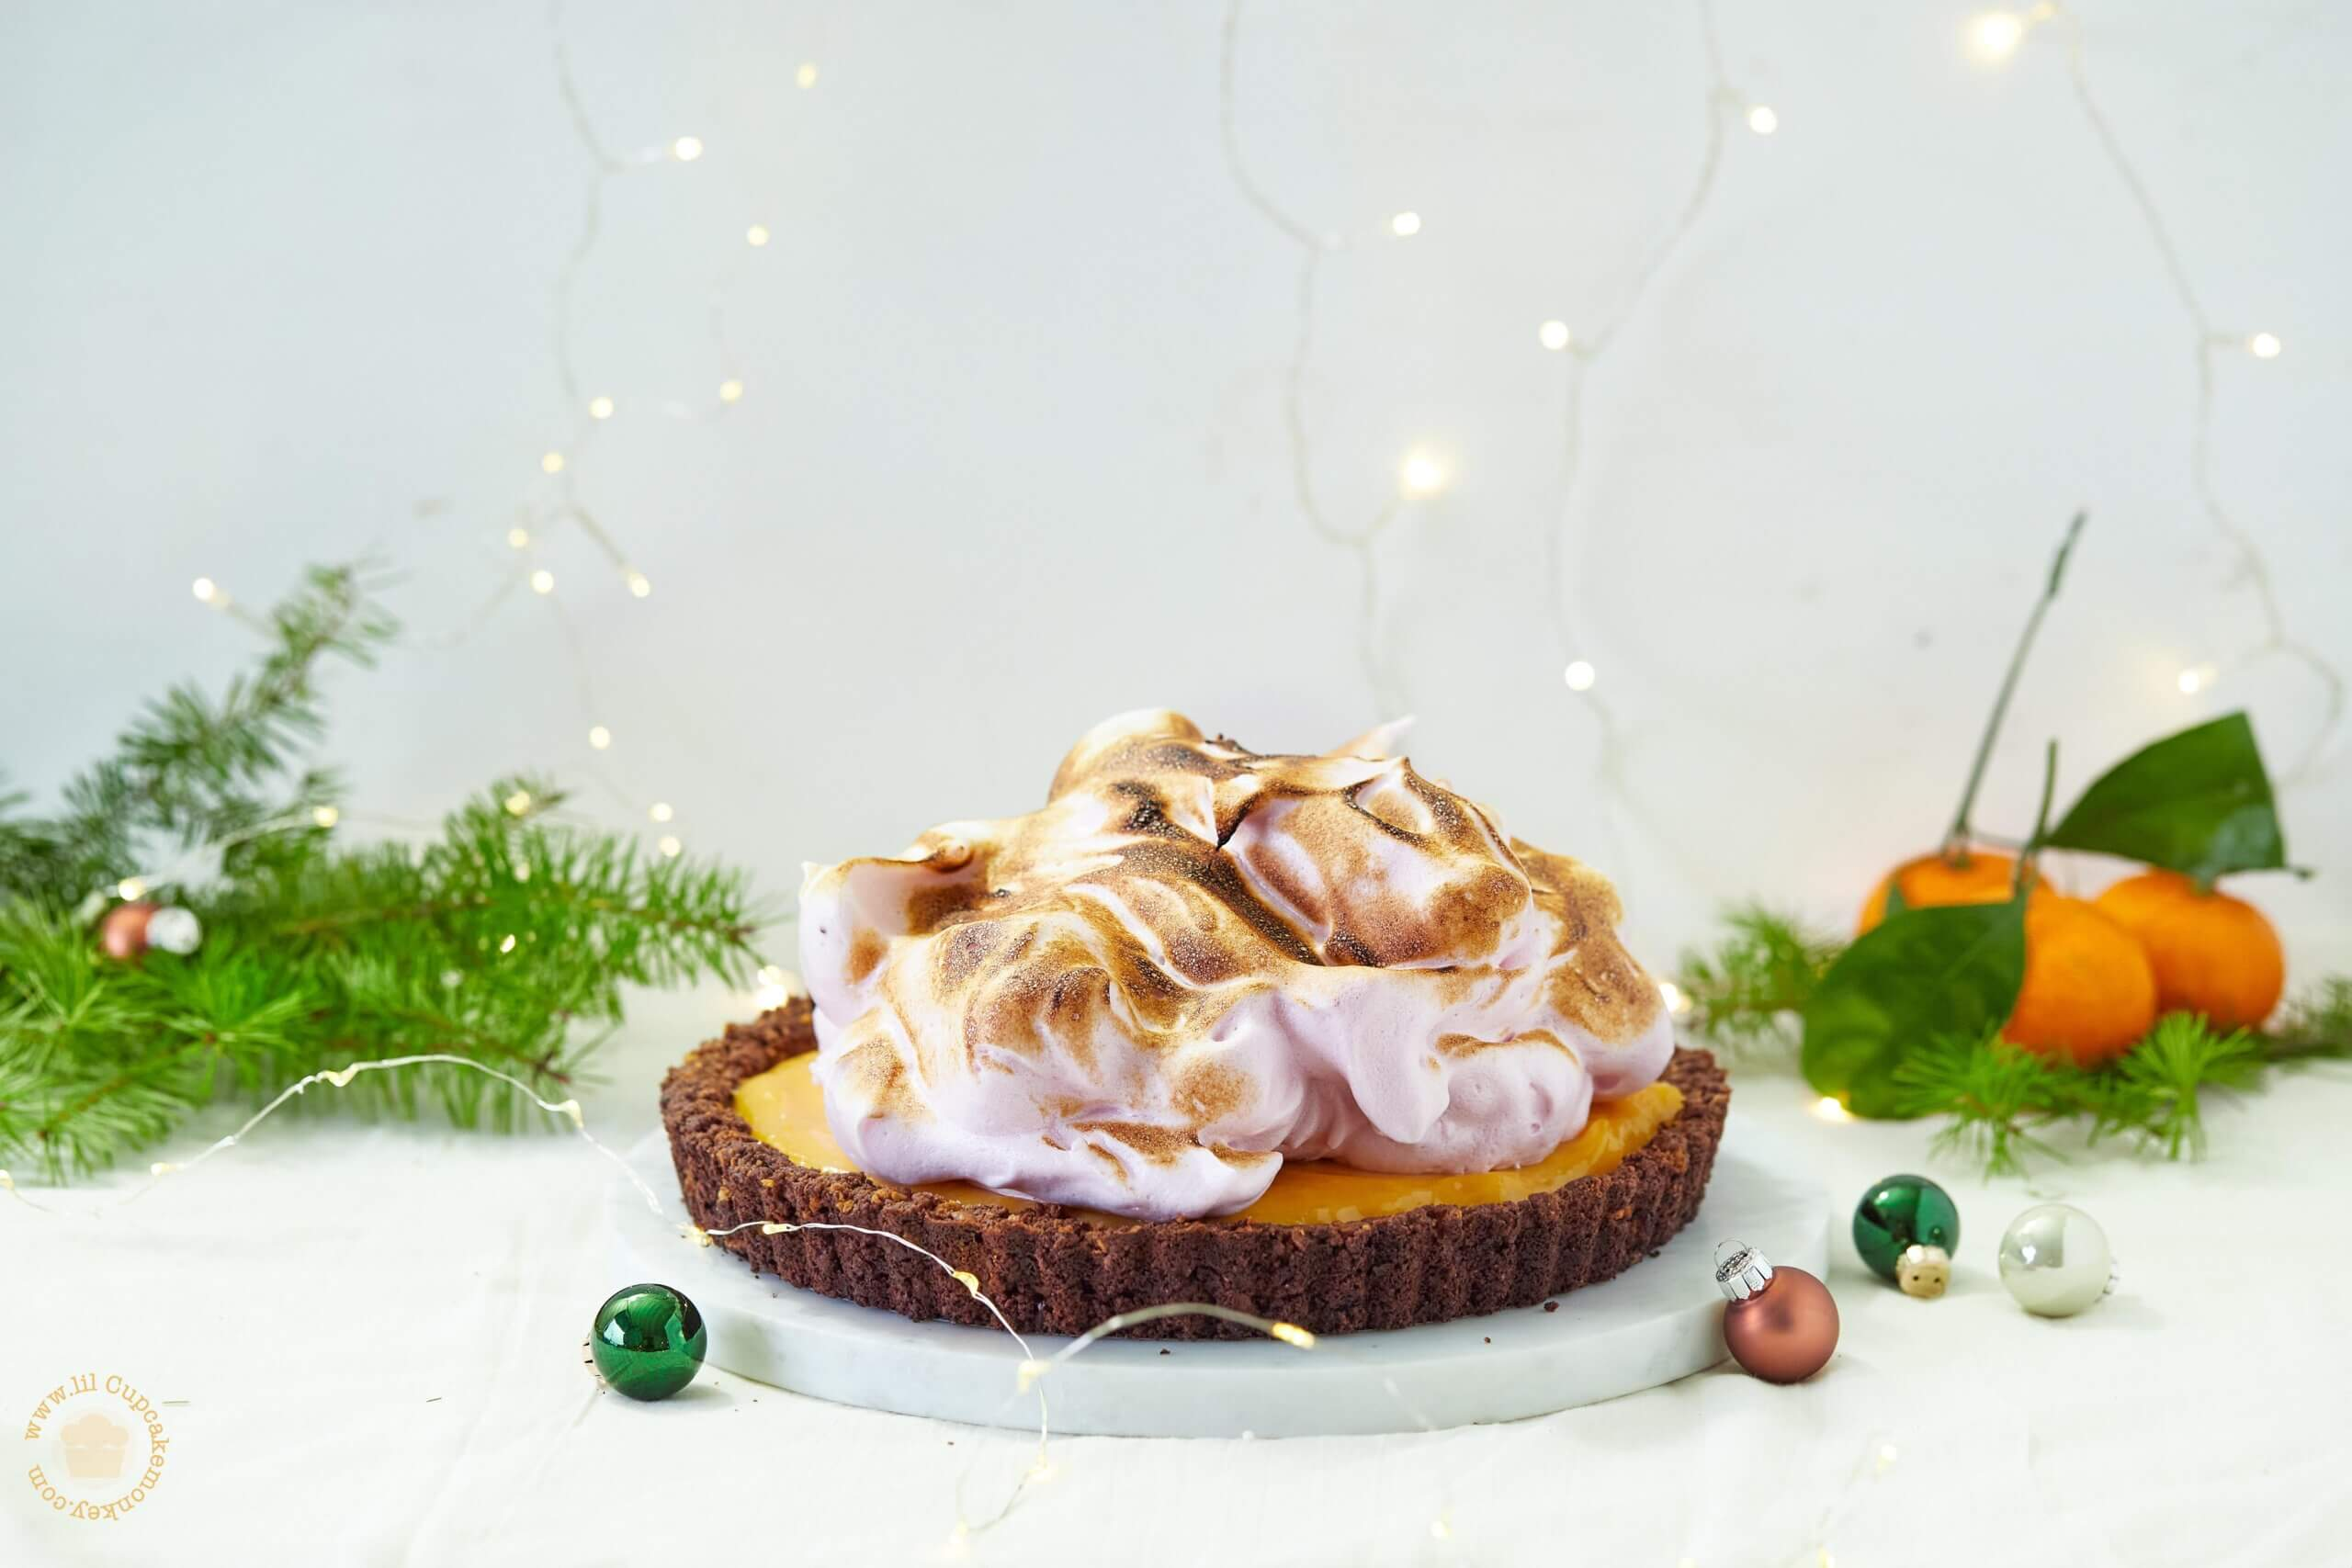 Cranberry and Orange Meringue Pie